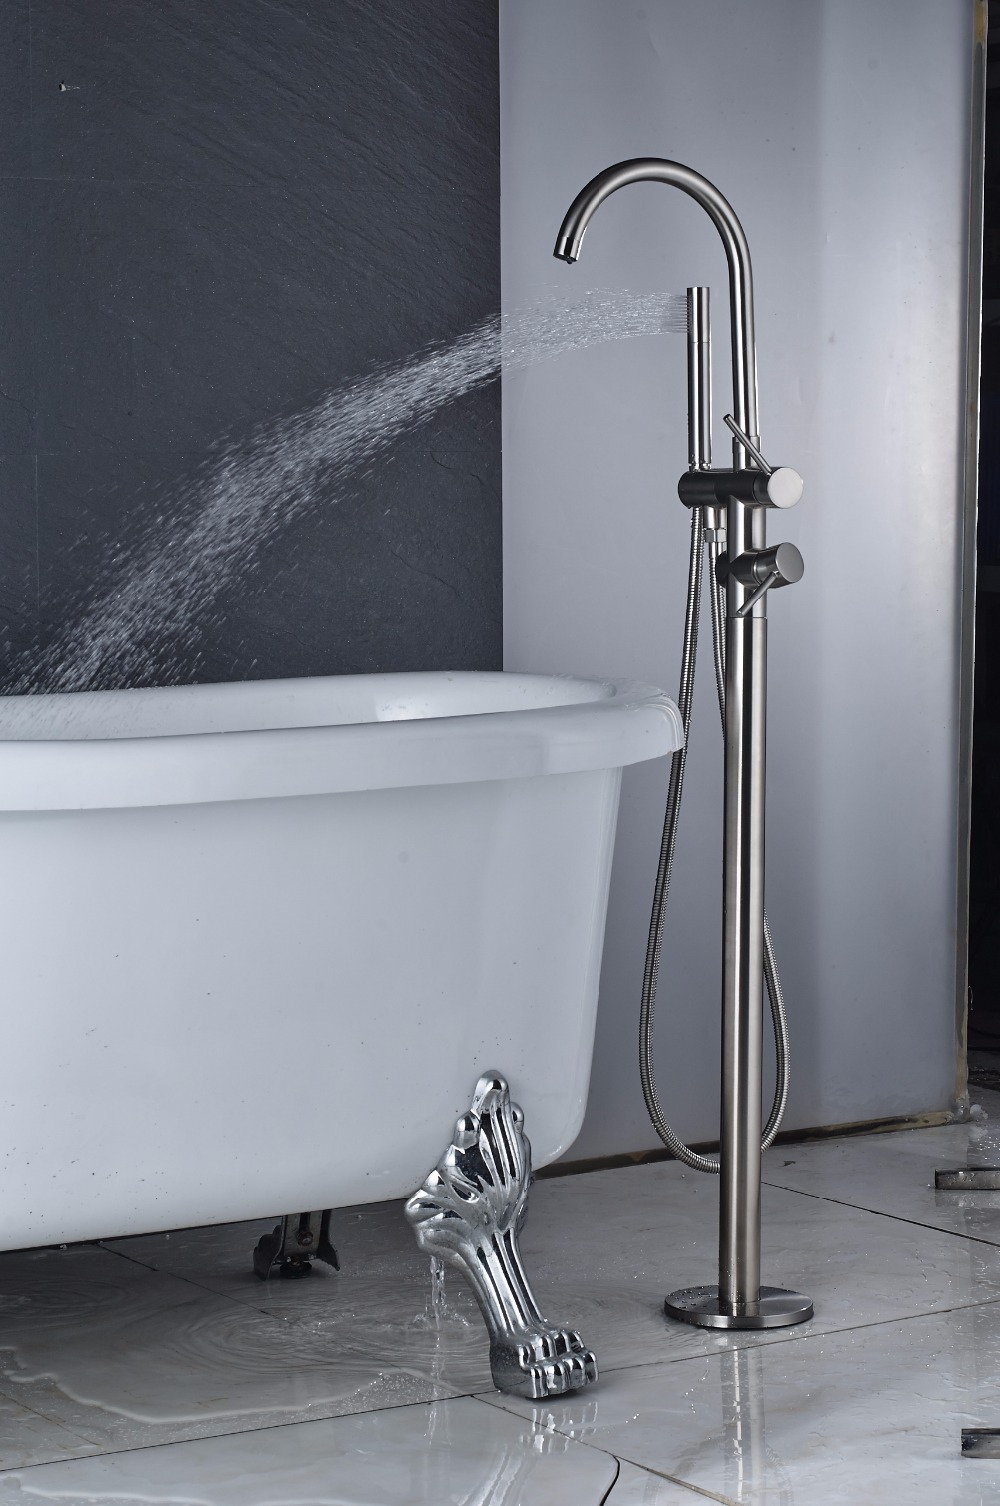 Aliexpress.com : Buy Quyanre Black Nickel Chrome Bathtub Shower ...